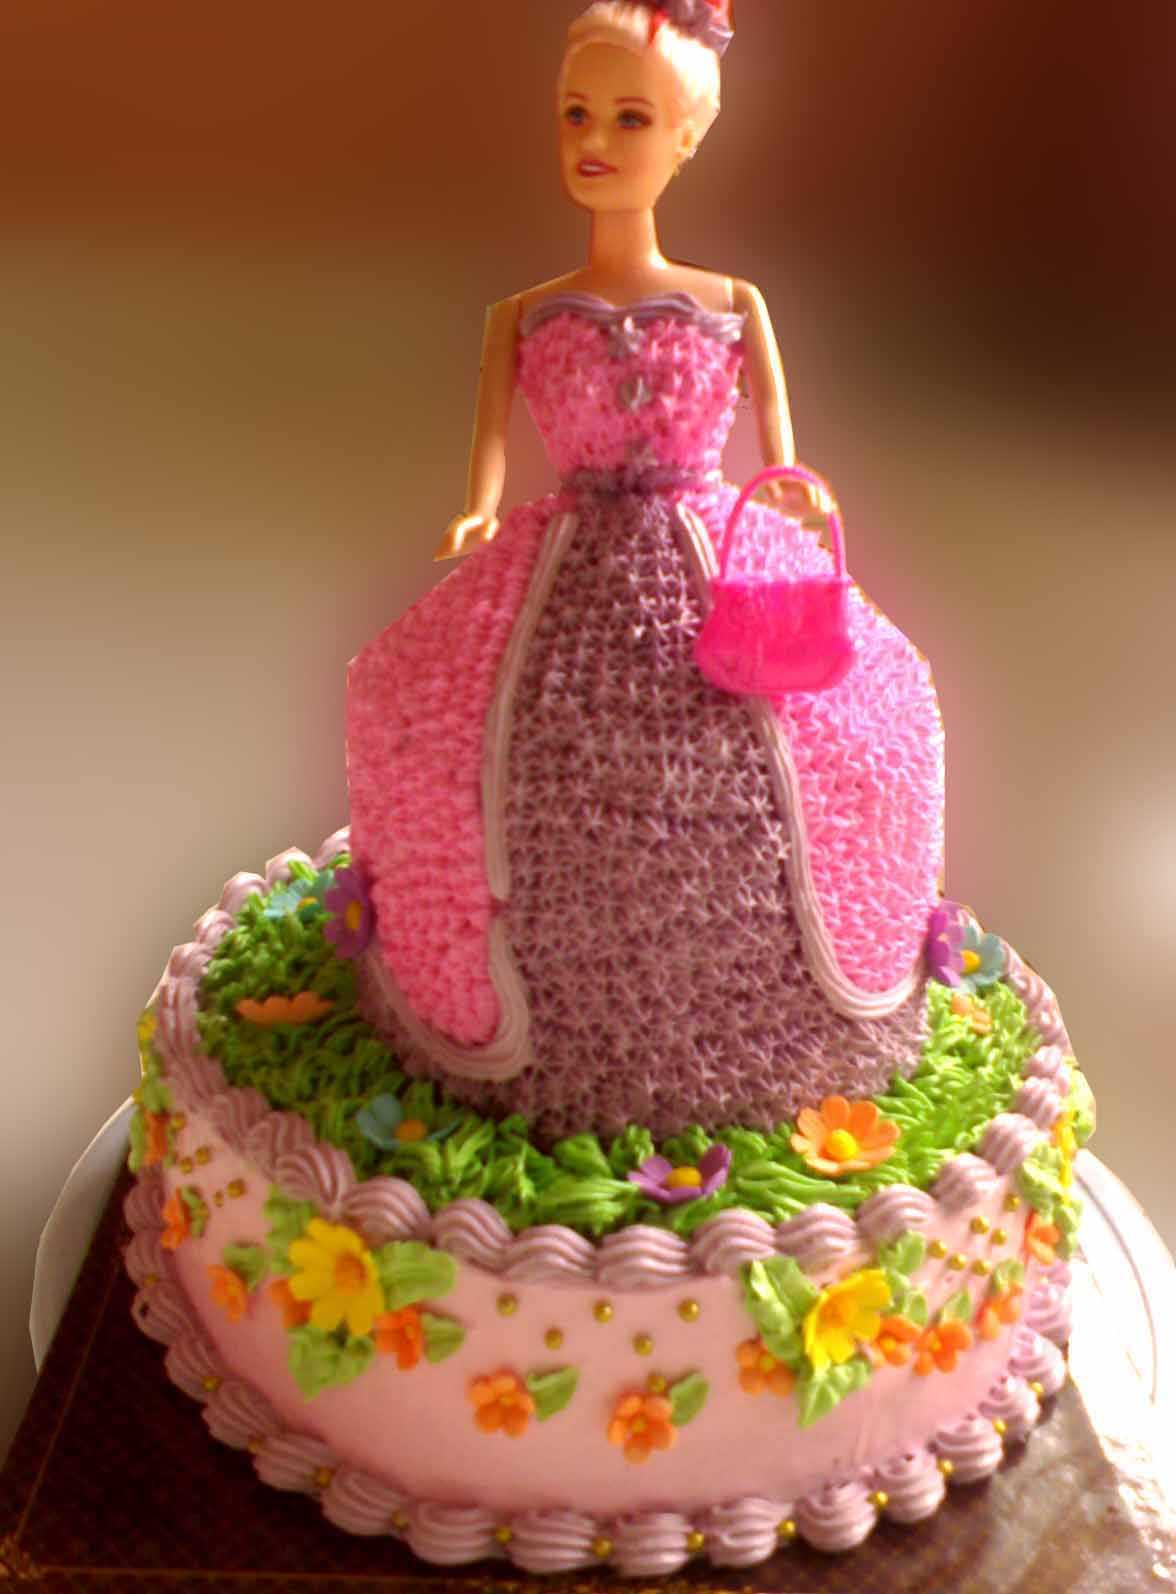 free desktop wallpaper Barbie Cake HD Wallpapers